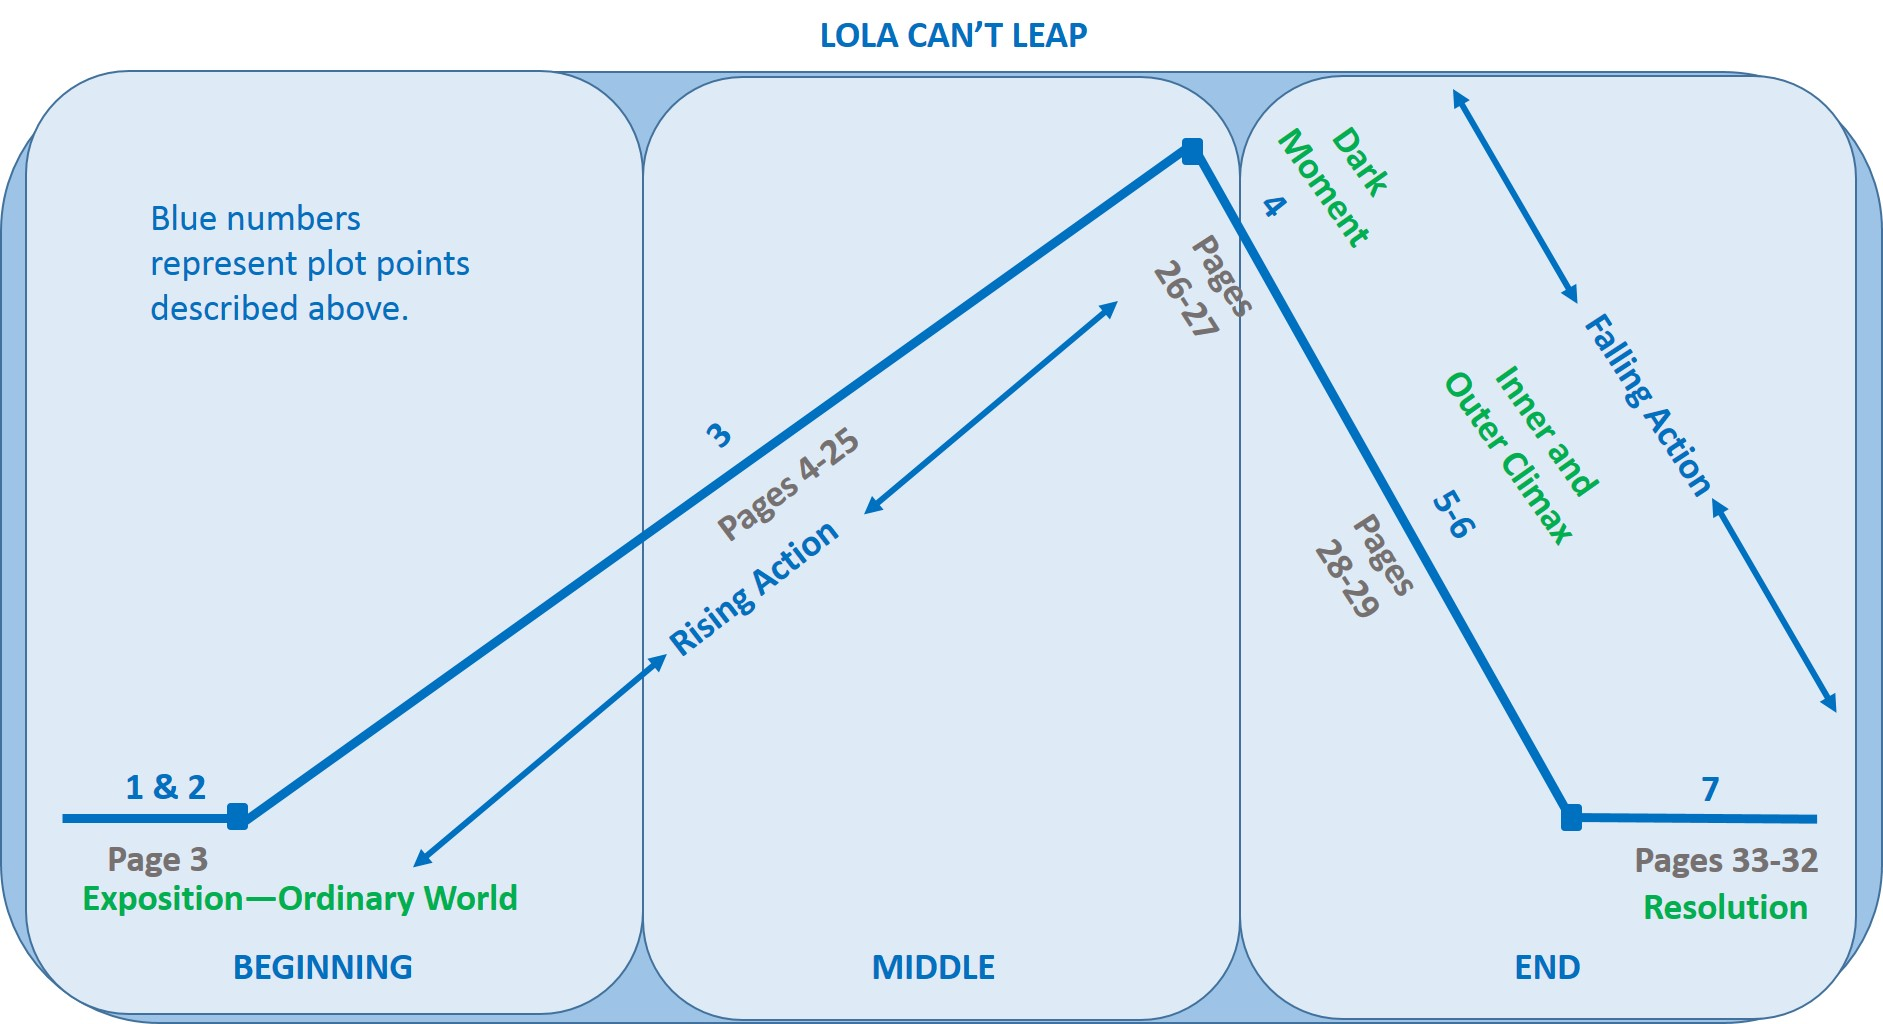 LOLA CAN'T LEAP DIAGRAM ARC